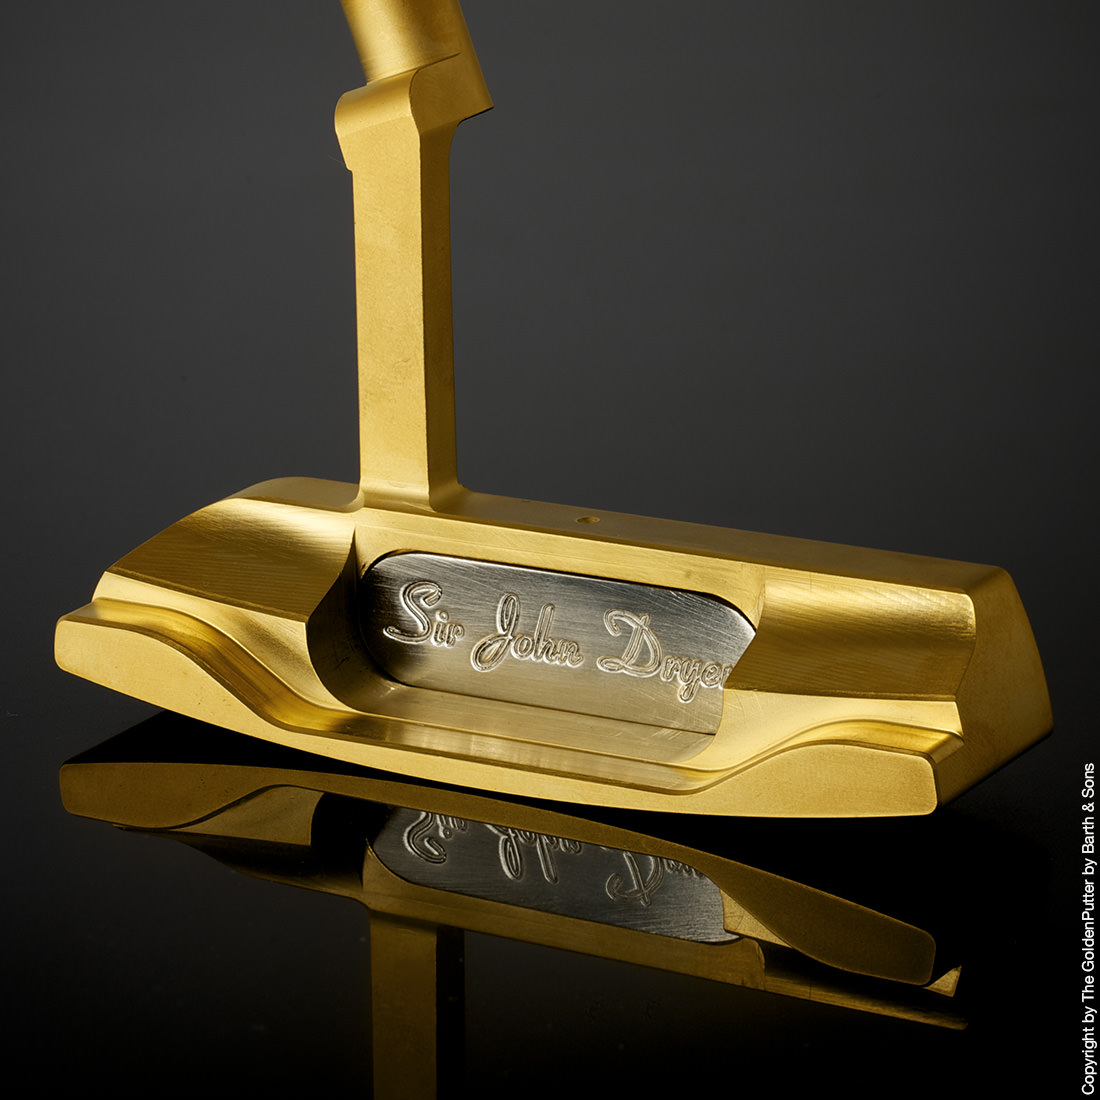 the-golden-putter-barth-sons-5